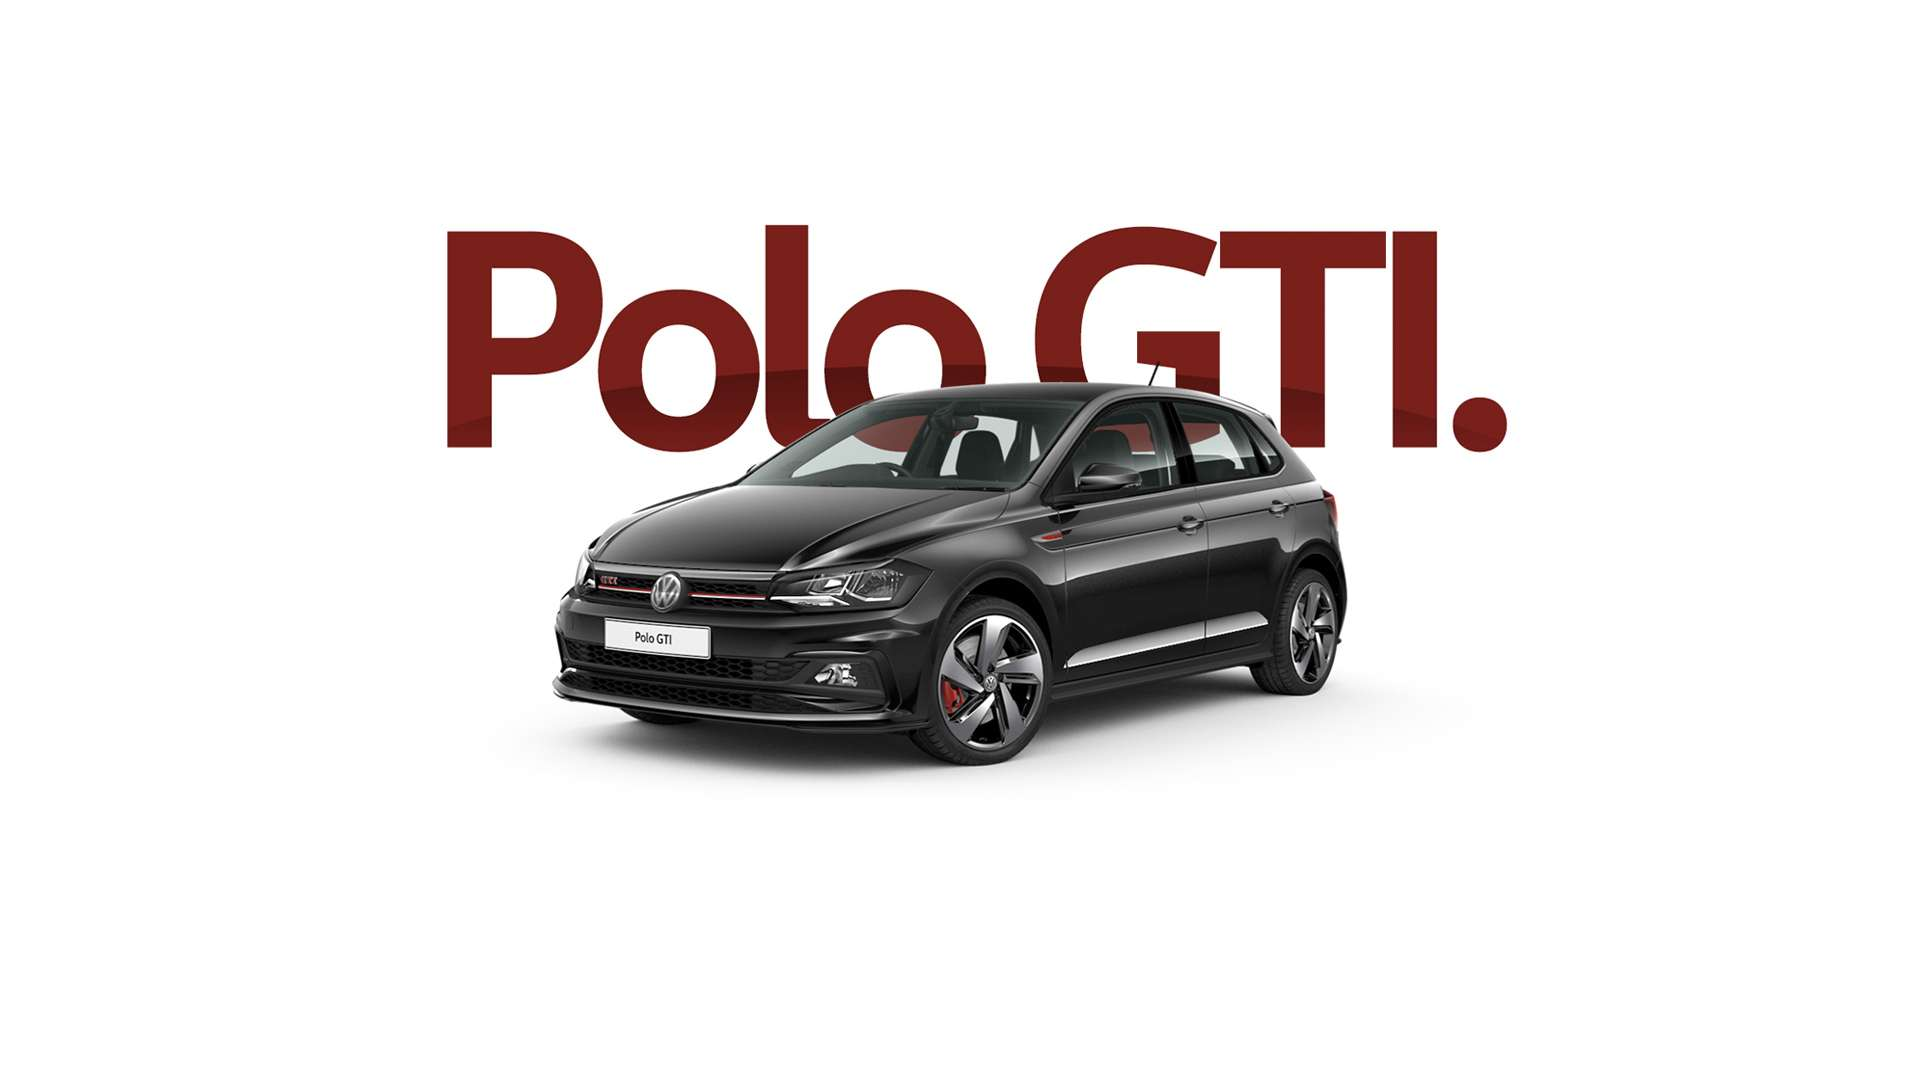 Polo GTI 2019 Banner Image